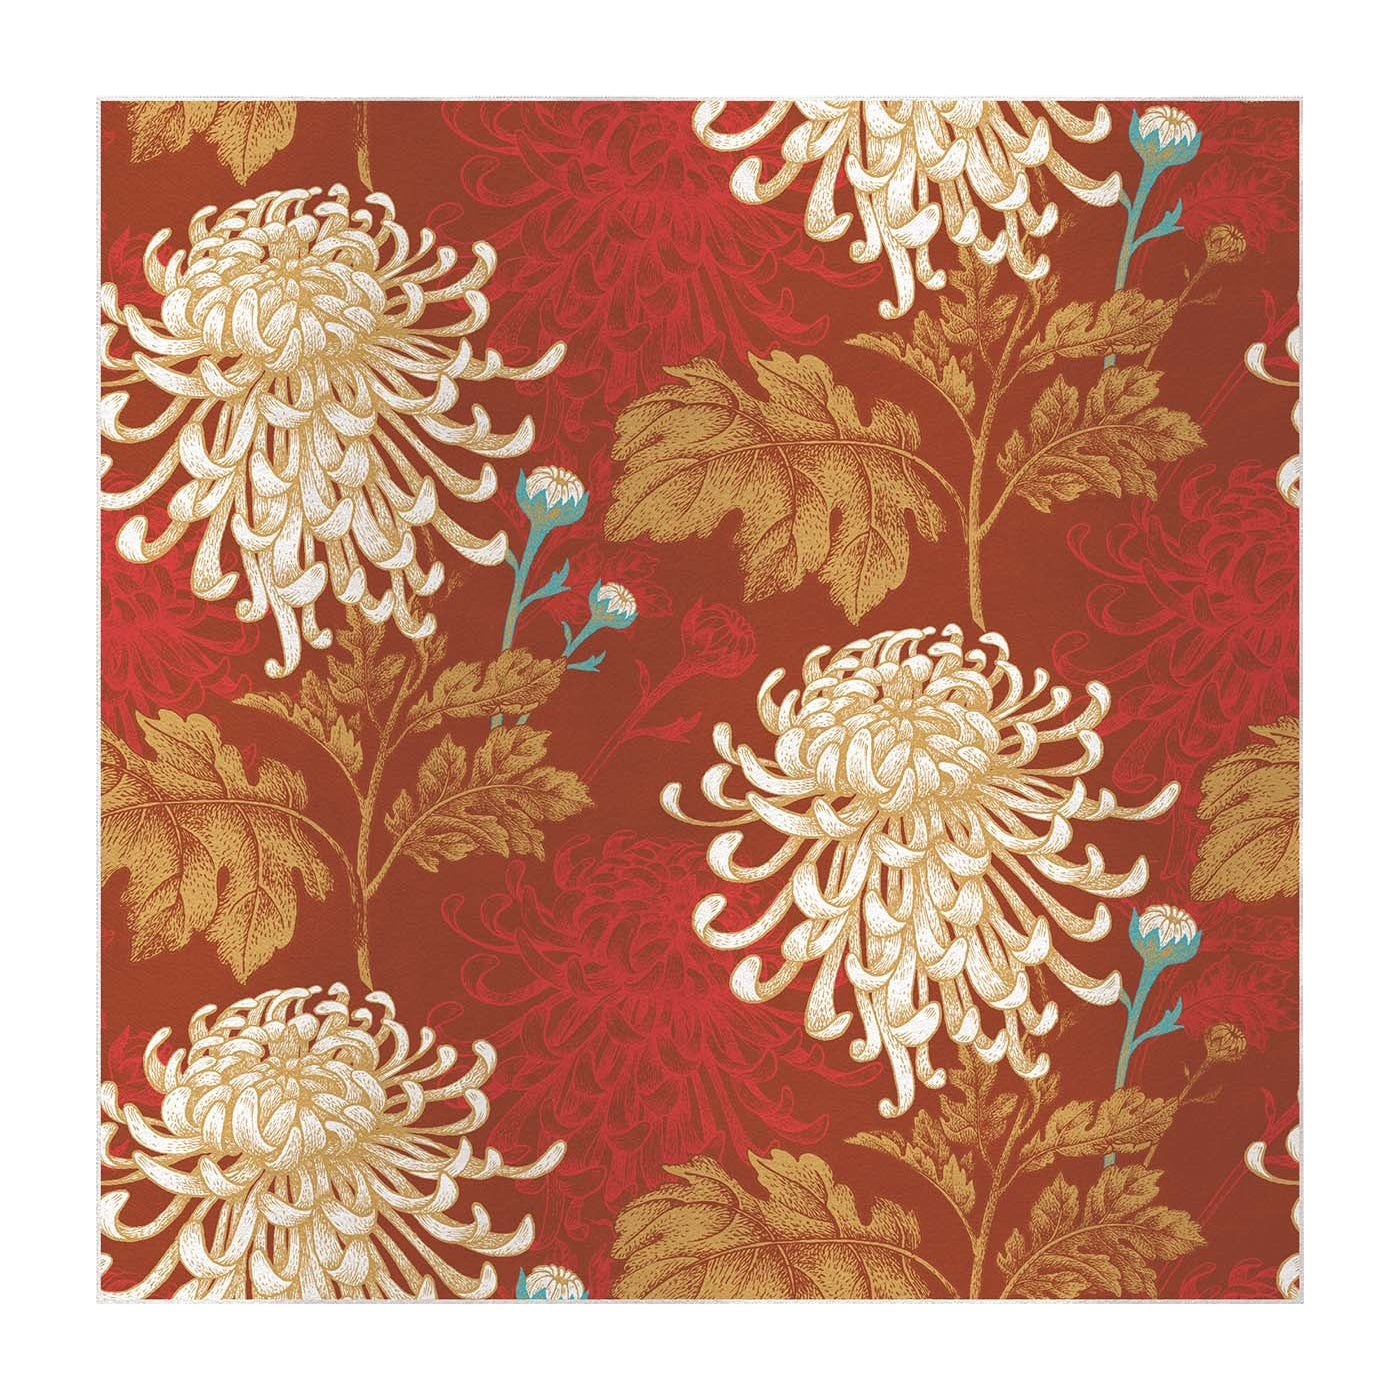 Mixed Dahlia Red Panel #1